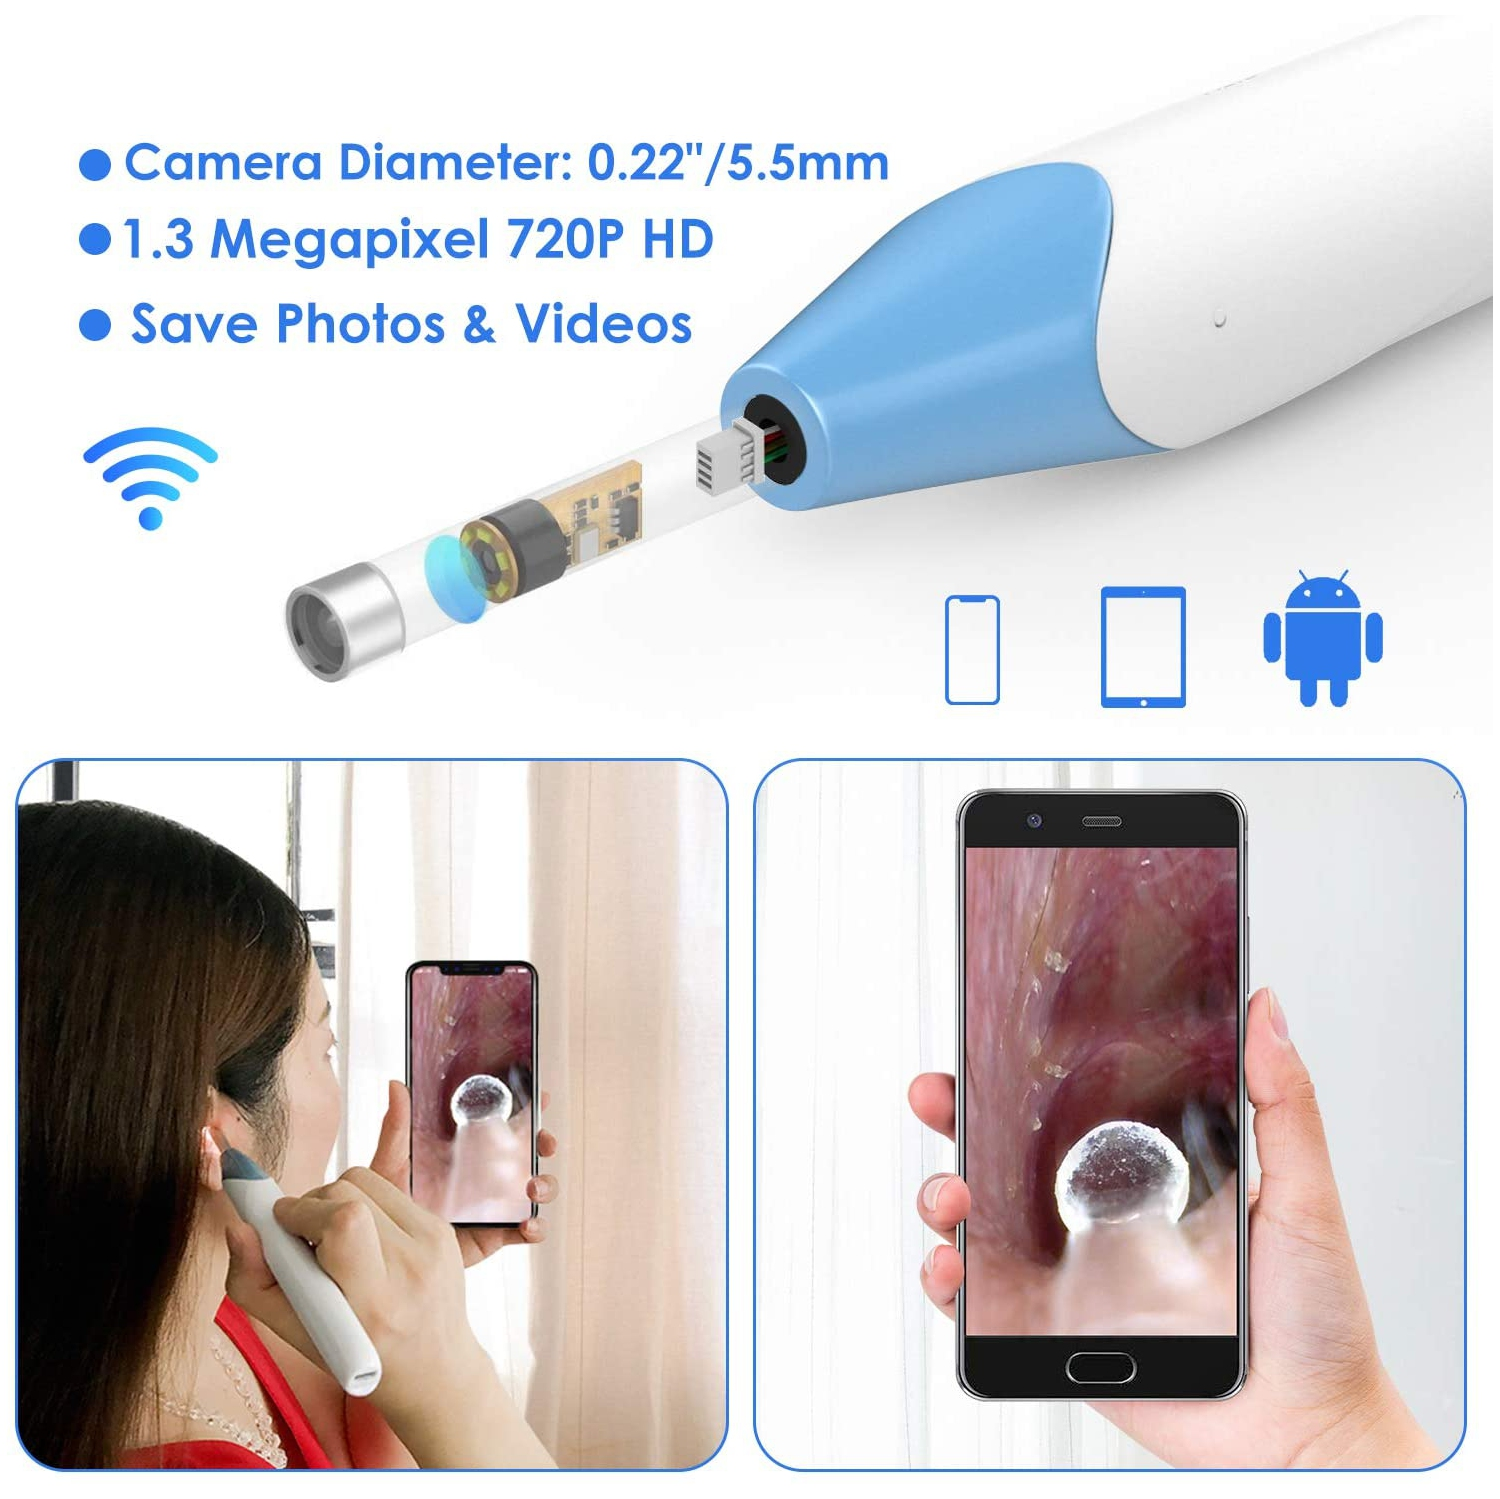 Tablet YYS SPY Digital Wireless Otoscope Windows USB Ear Cleaner with WiFi Box for iPhone iPad Android Mac 720P WiFi Ear Scope Endoscope Ear Camera with Earwax Remover Tools with 6 LED Lights